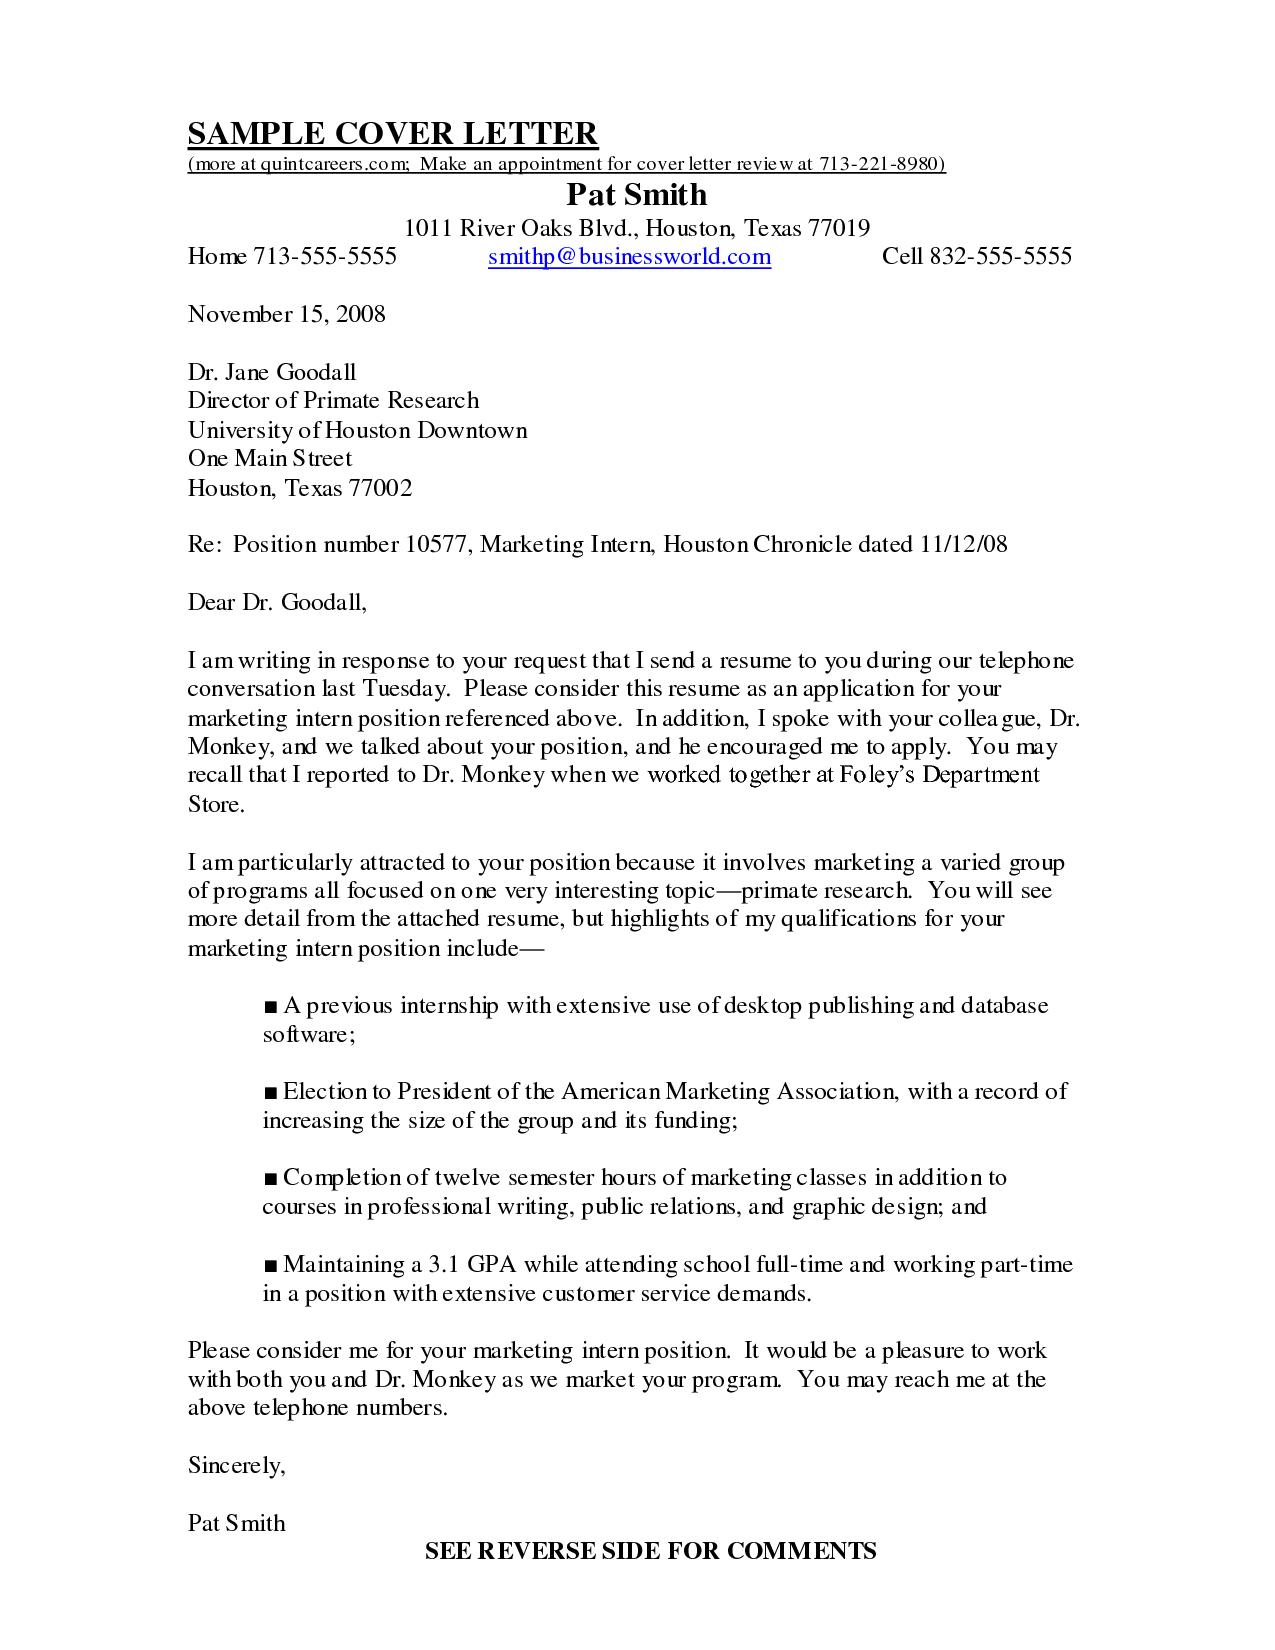 Pin by Sample Cover Letters on Cover Letter Samples ...